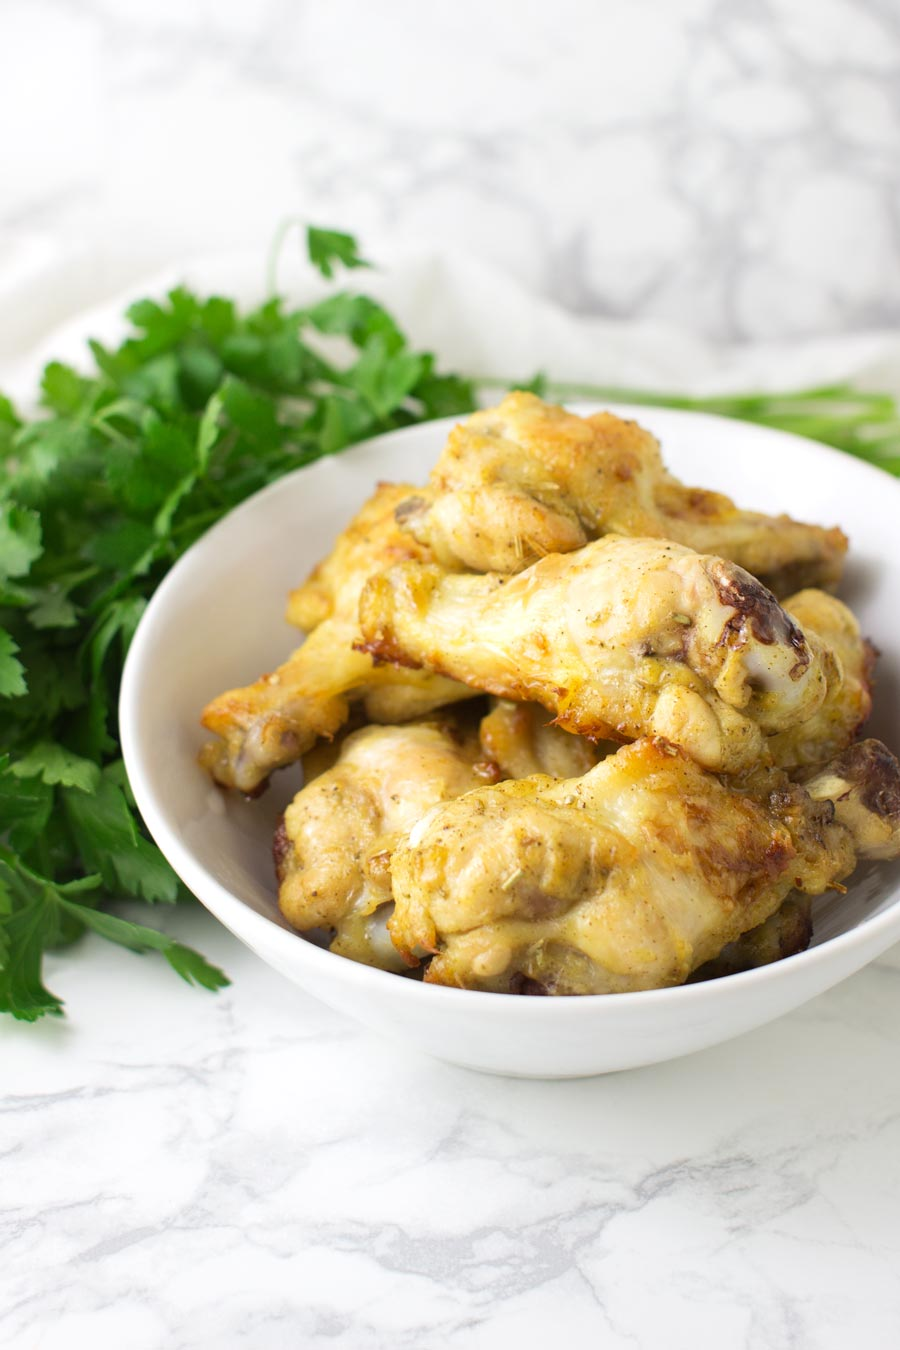 Mustard-Glazed Chicken Wings recipe from acleanplate.com #Paleo #aip #glutenfree